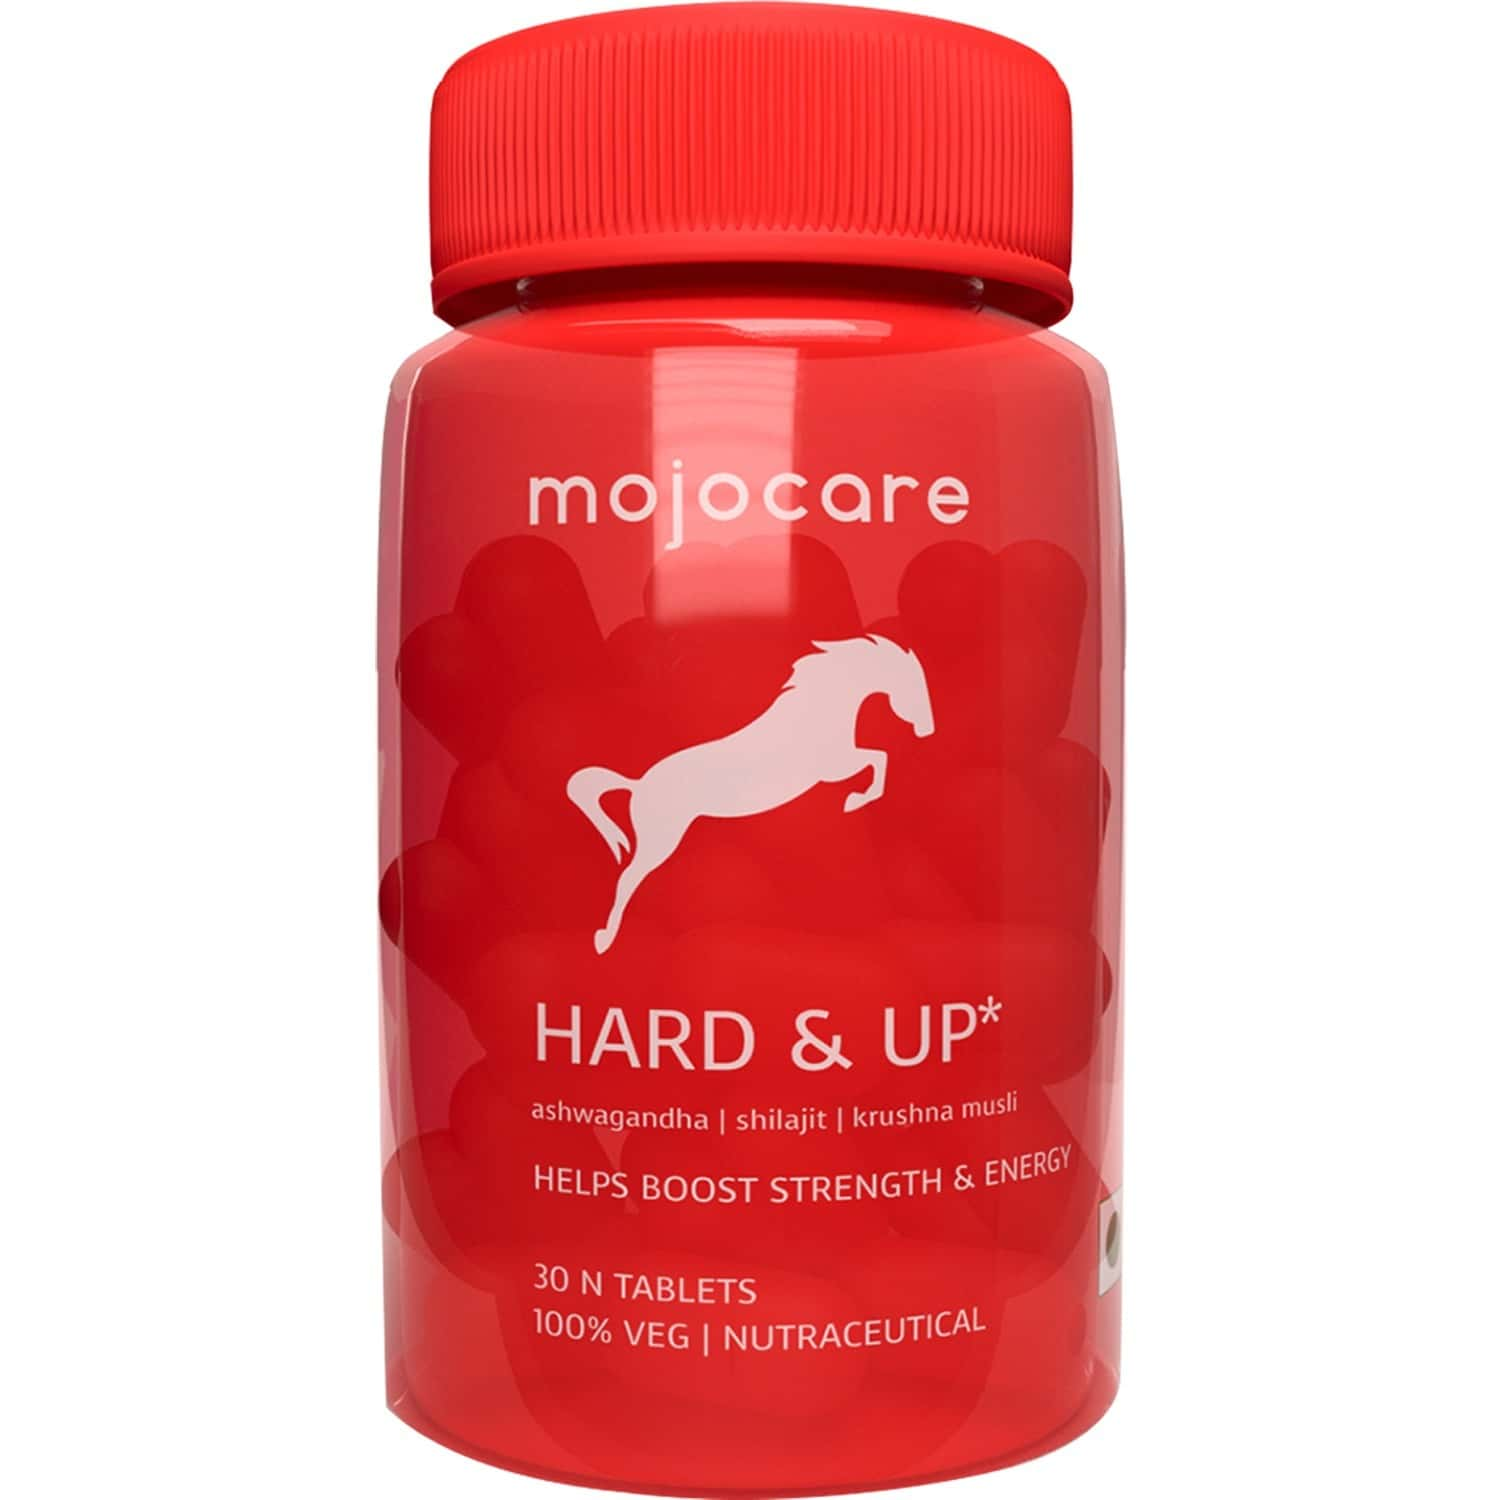 Mojocare Hard And Up For Strength And Endurance - Pack Of 1x30 Tablets